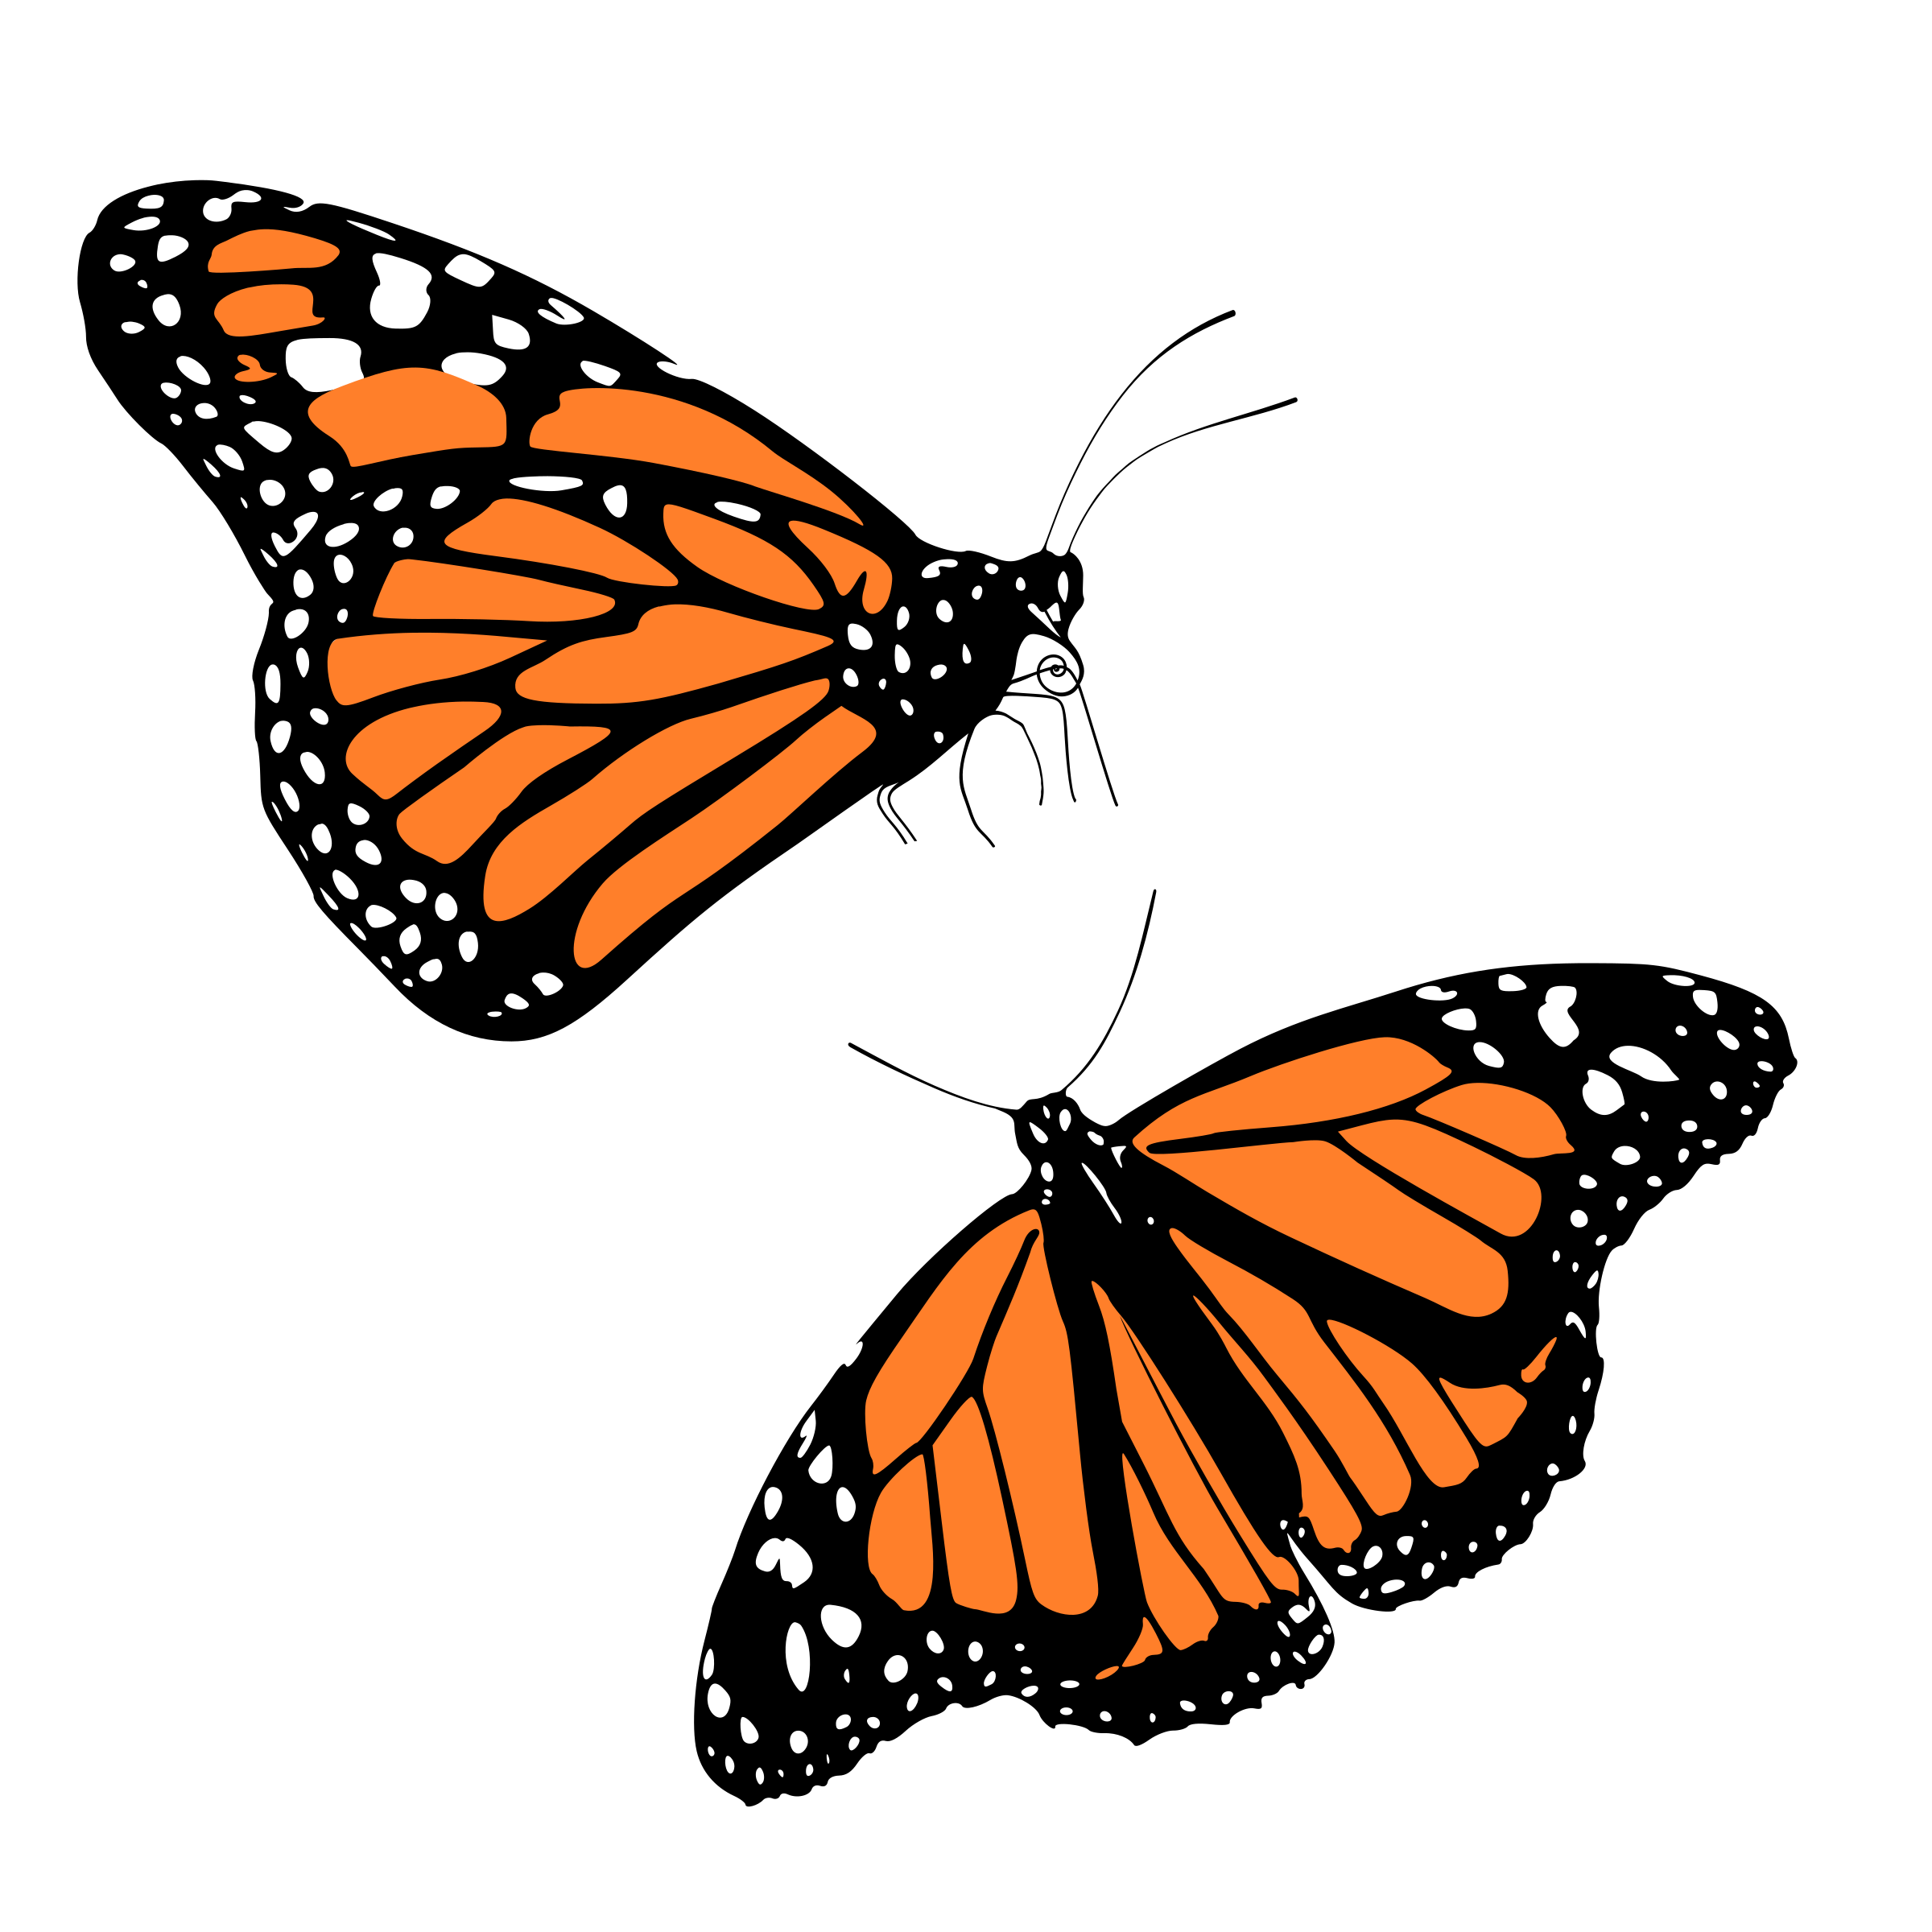 Smiley clipart butterfly Butterflies image clip butterfly monarch